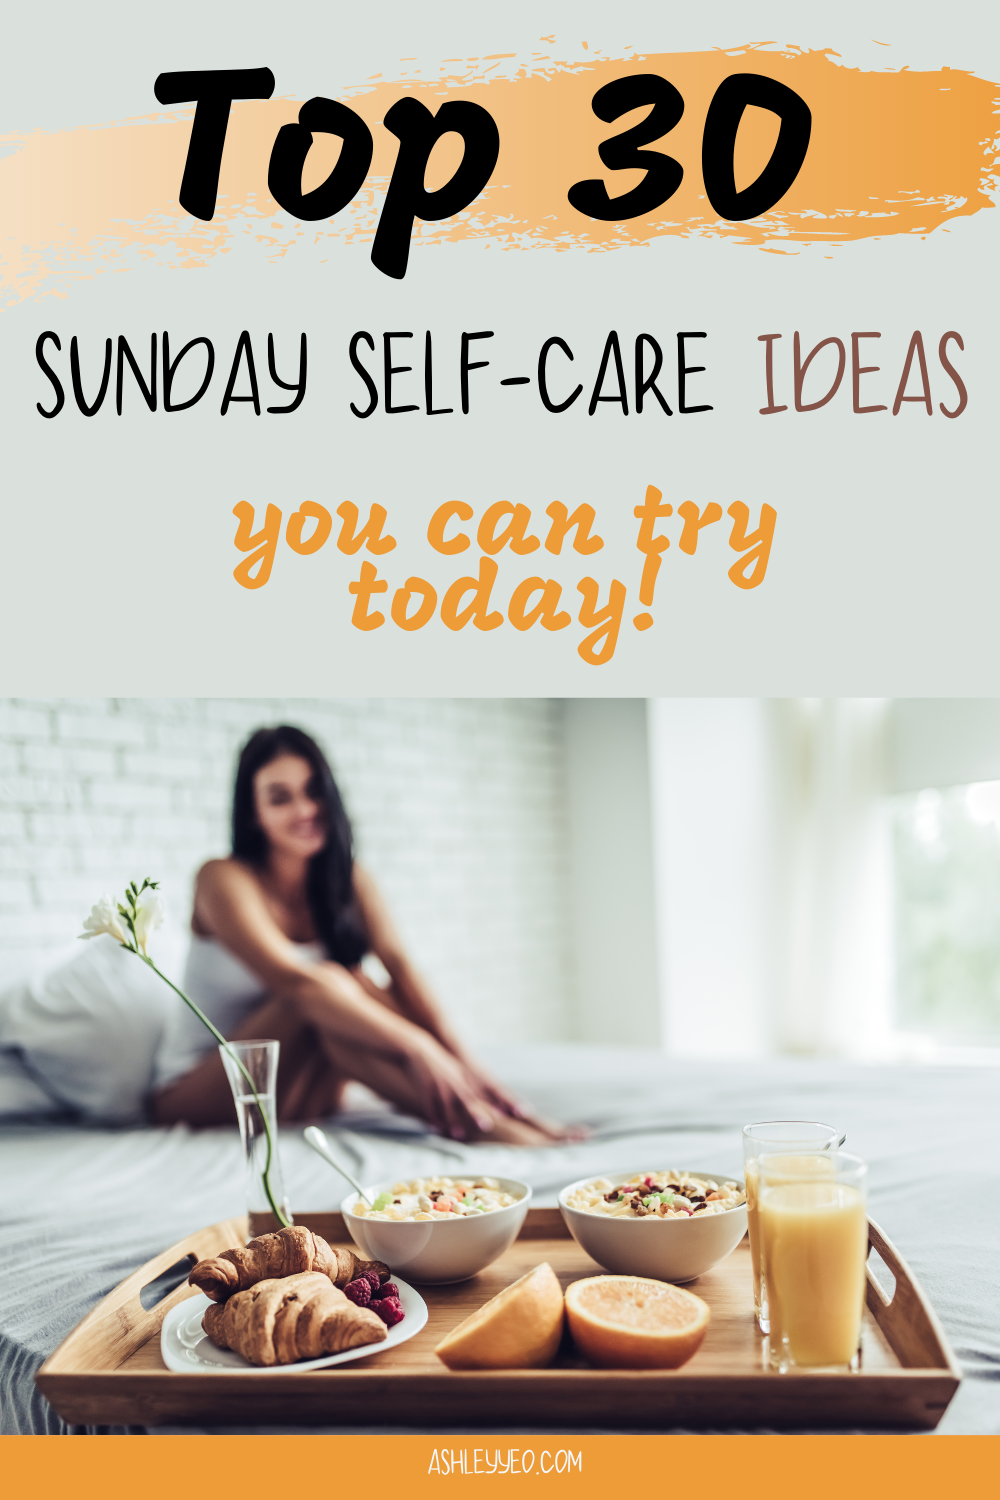 Top 30 Sunday Self-Care Ideas